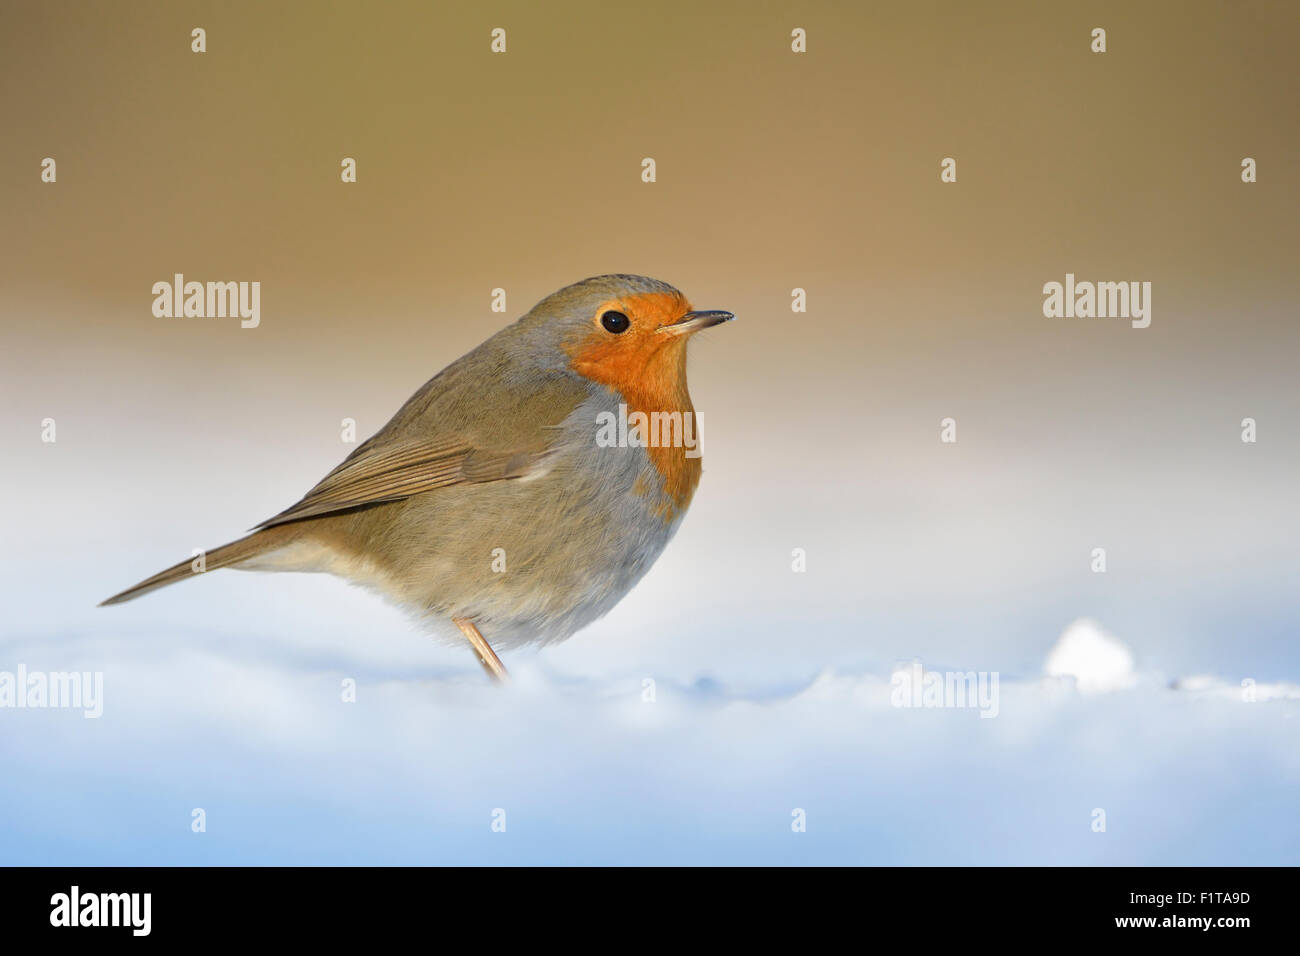 Cute Robin Redbreast / Rotkehlchen ( Erithacus rubecula ) sits on snwo covered ground, warm tones, sunlight. - Stock Image